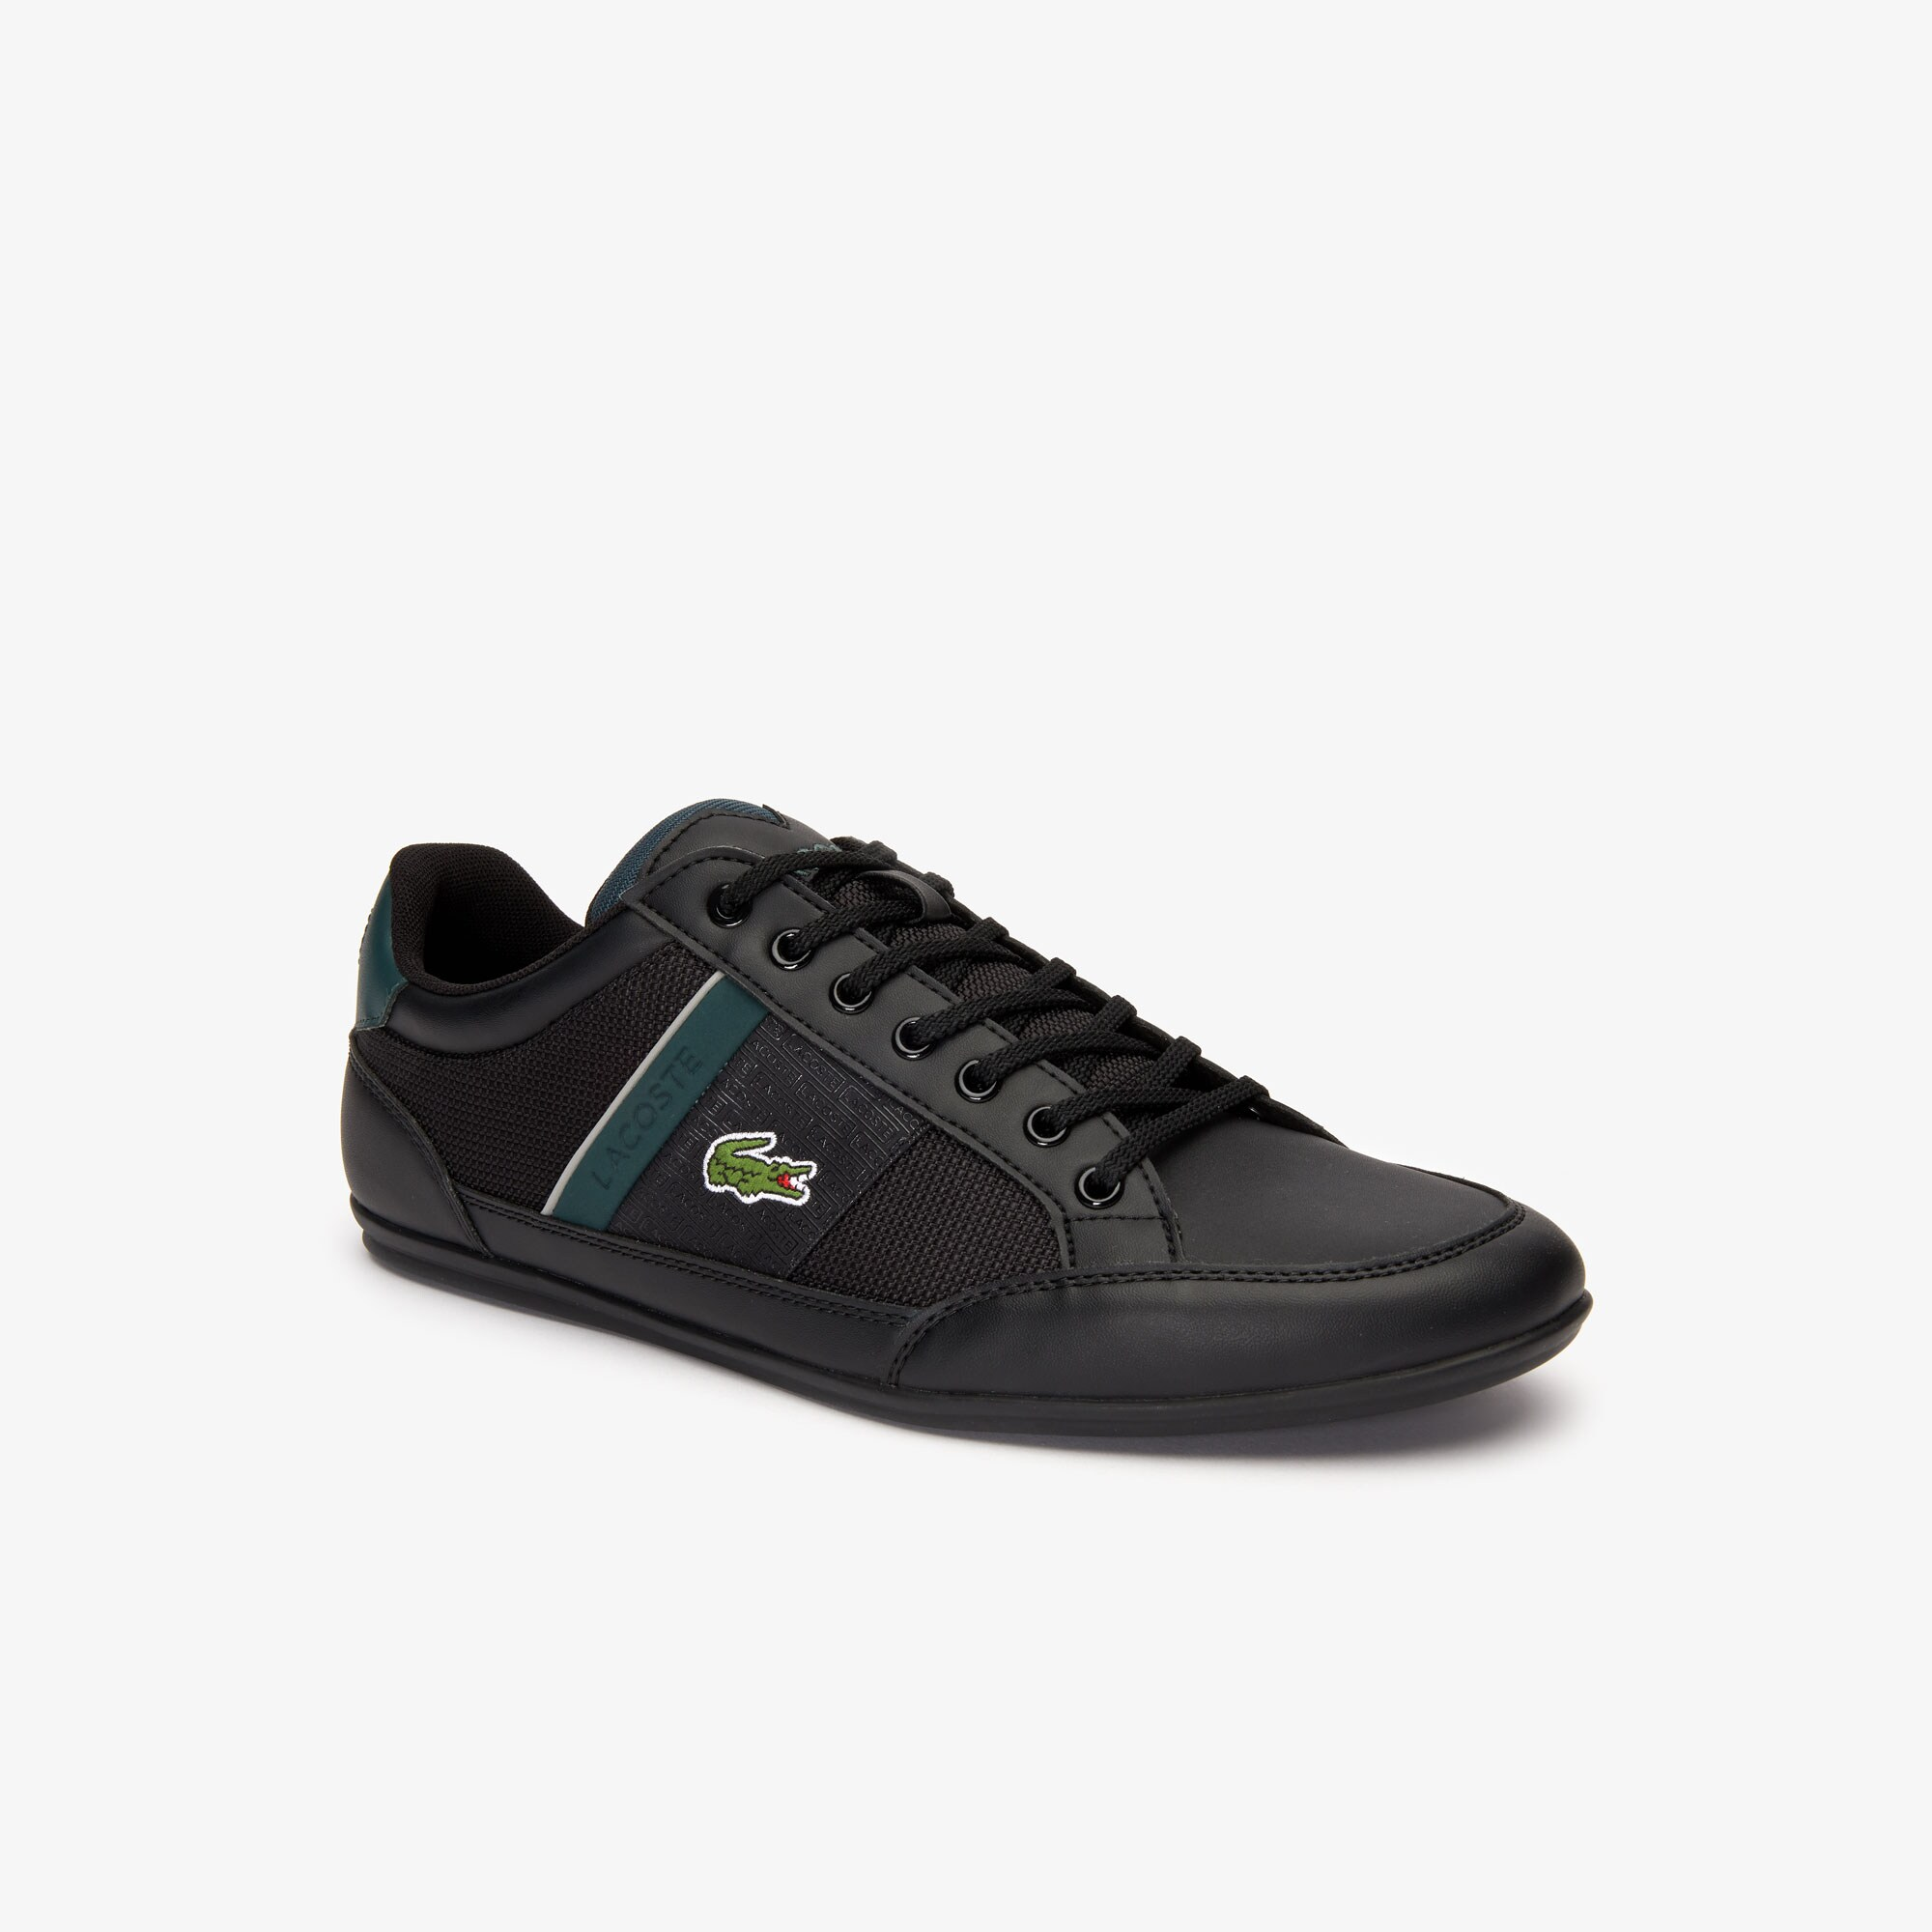 Lacoste Lacoste HommeCollection Chaussures Chaussures Chaussures HommeCollection Lacoste HommeCollection 8n0wPkO